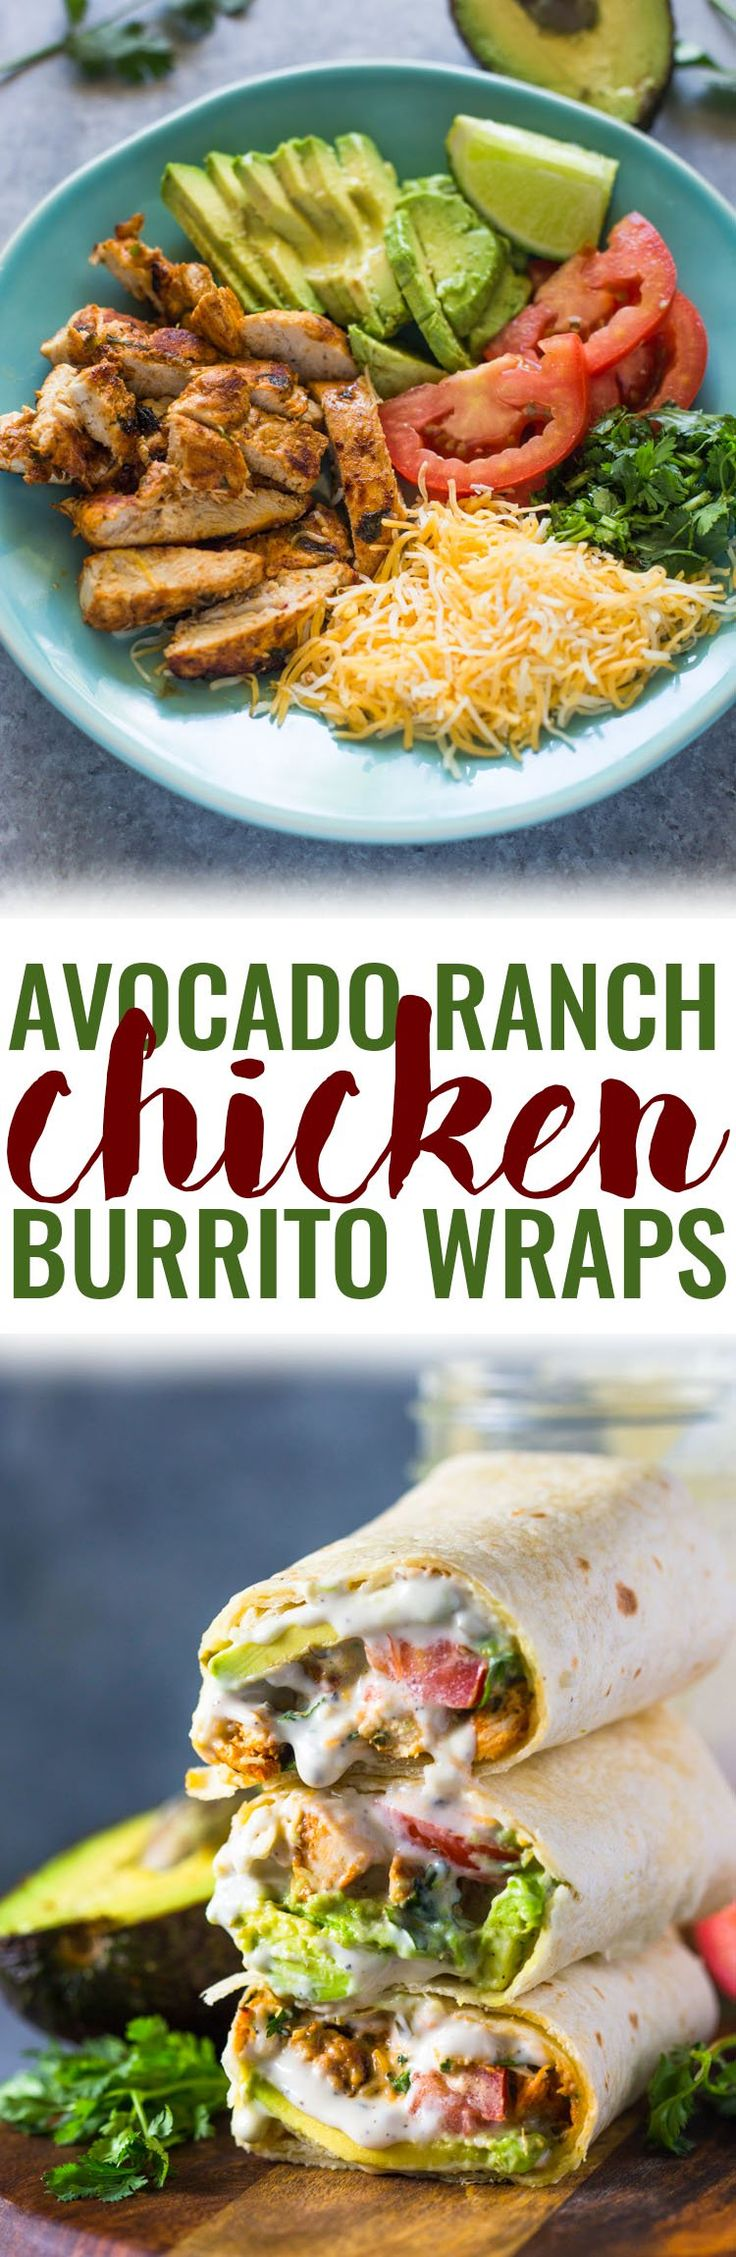 Avocado Ranch Chicken Burrito Wraps